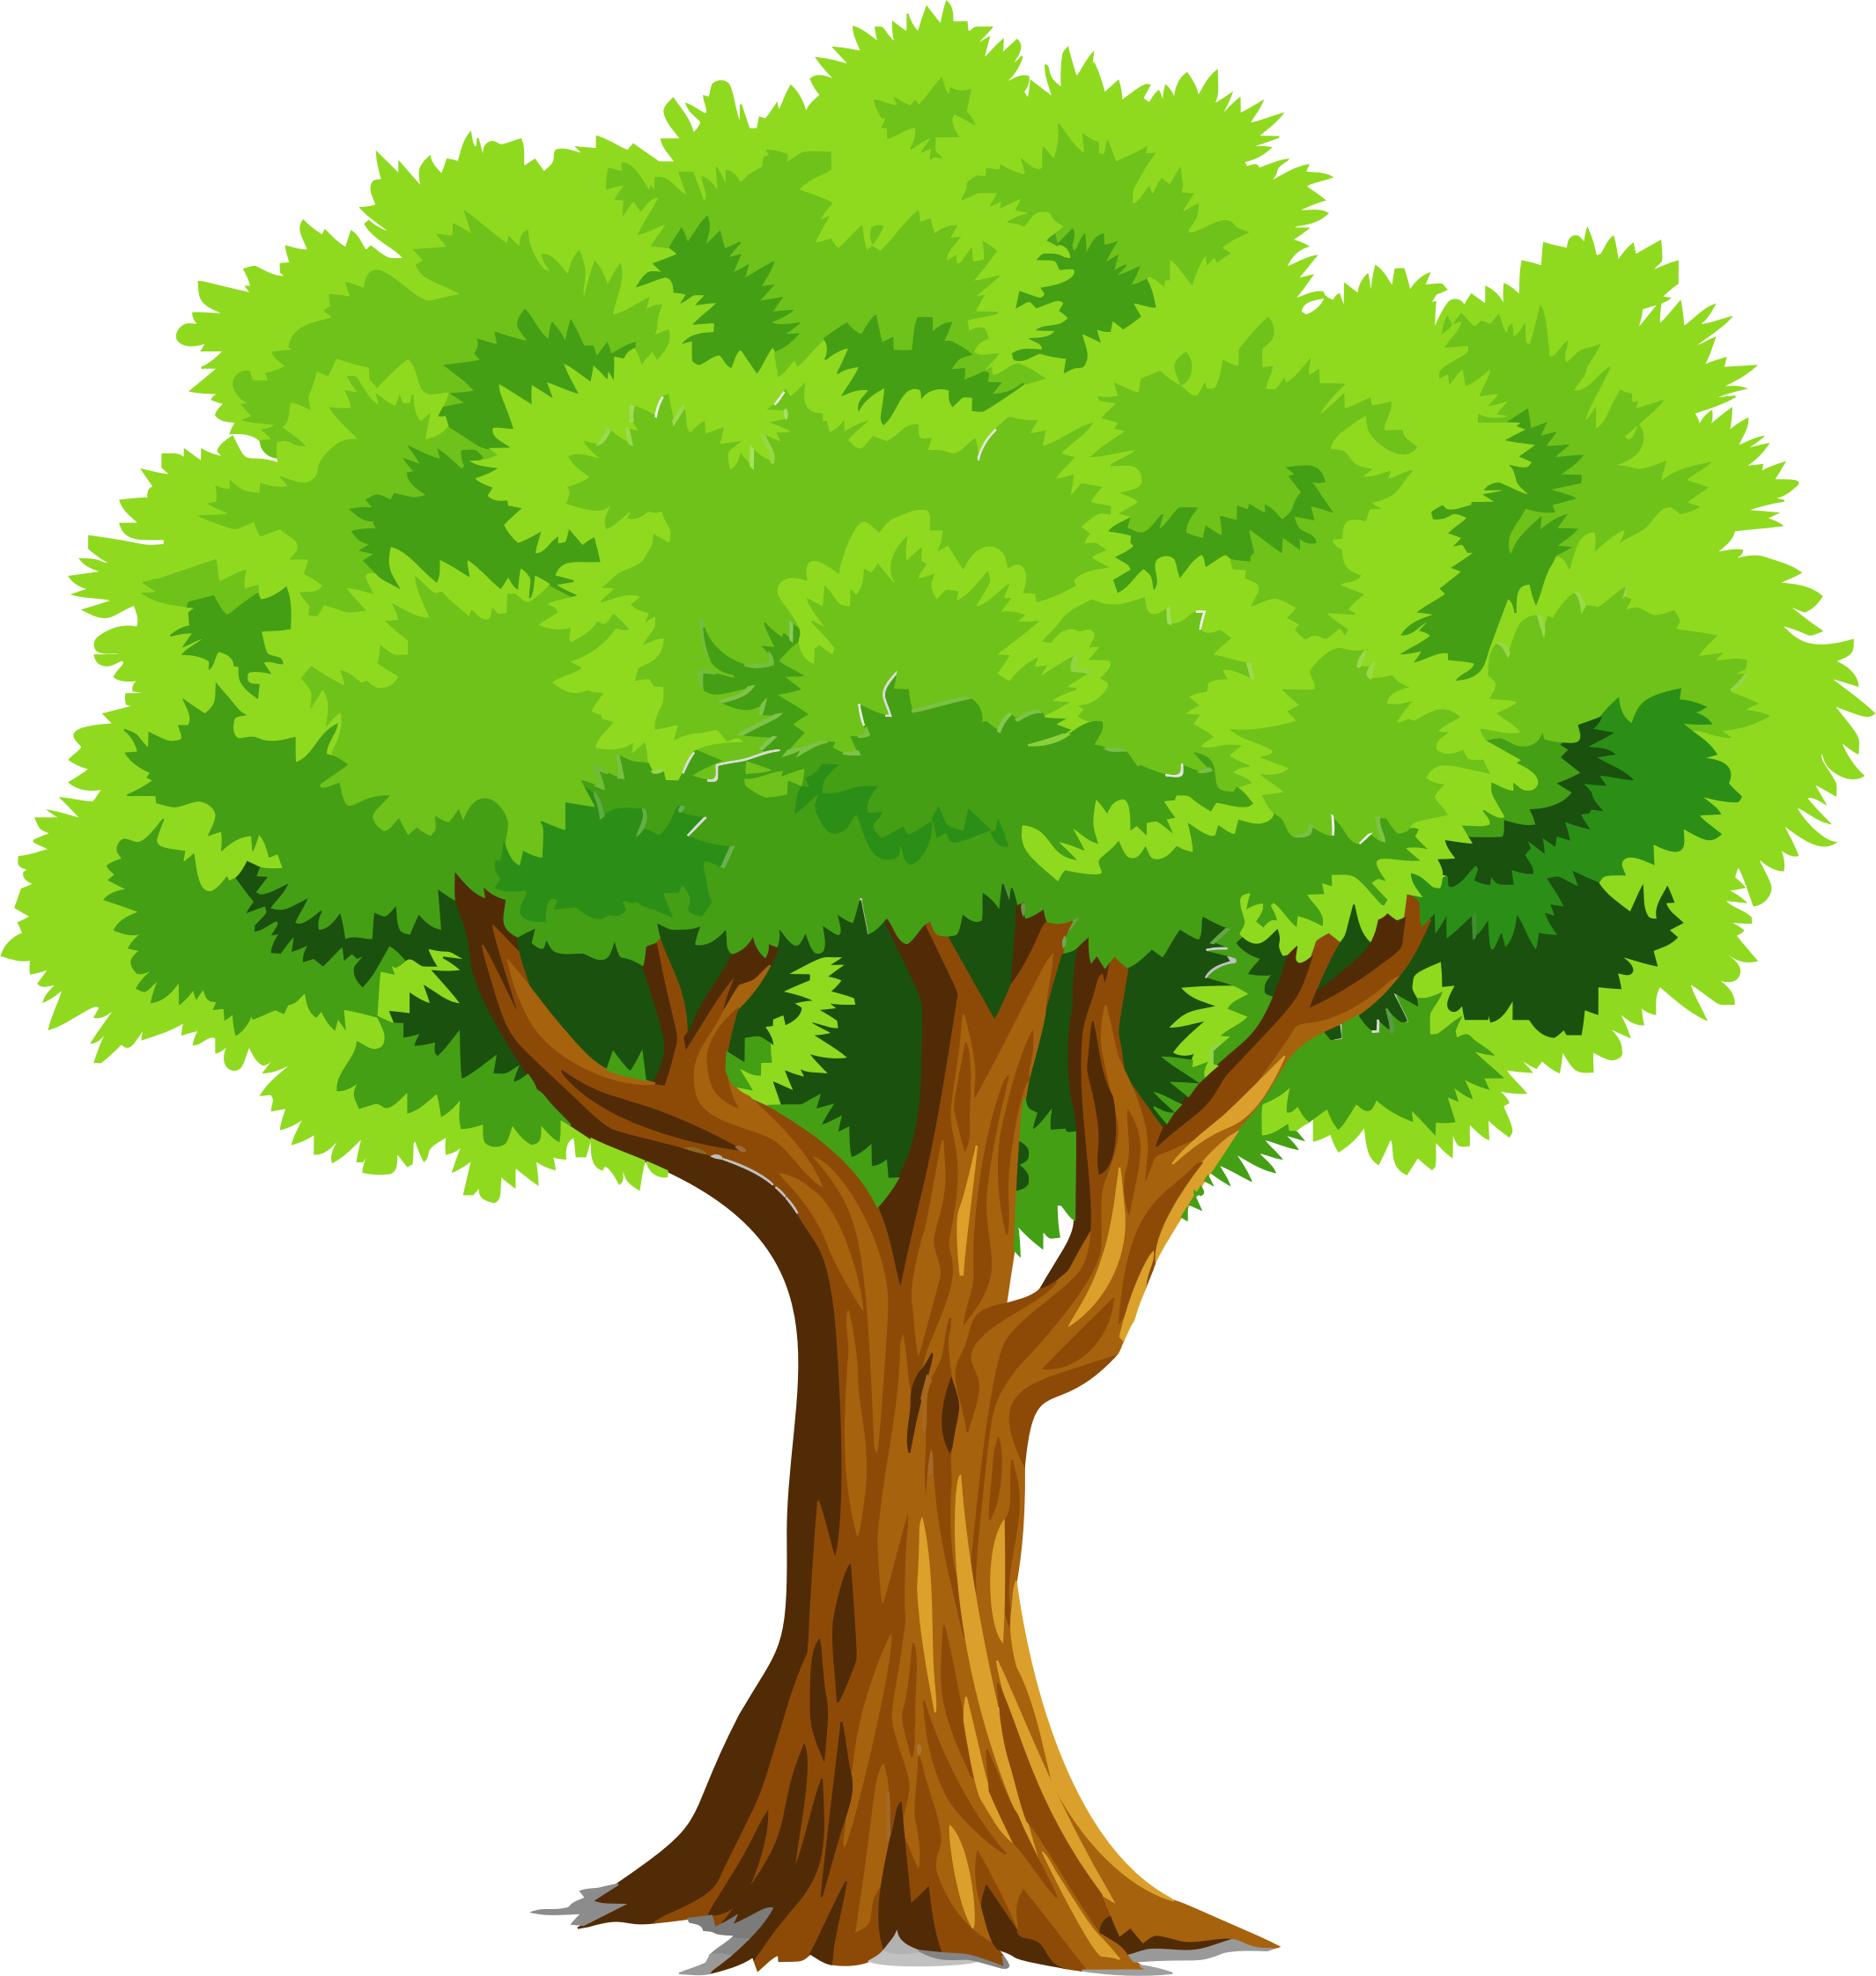 Tree clipart. Colorful natural by gdj